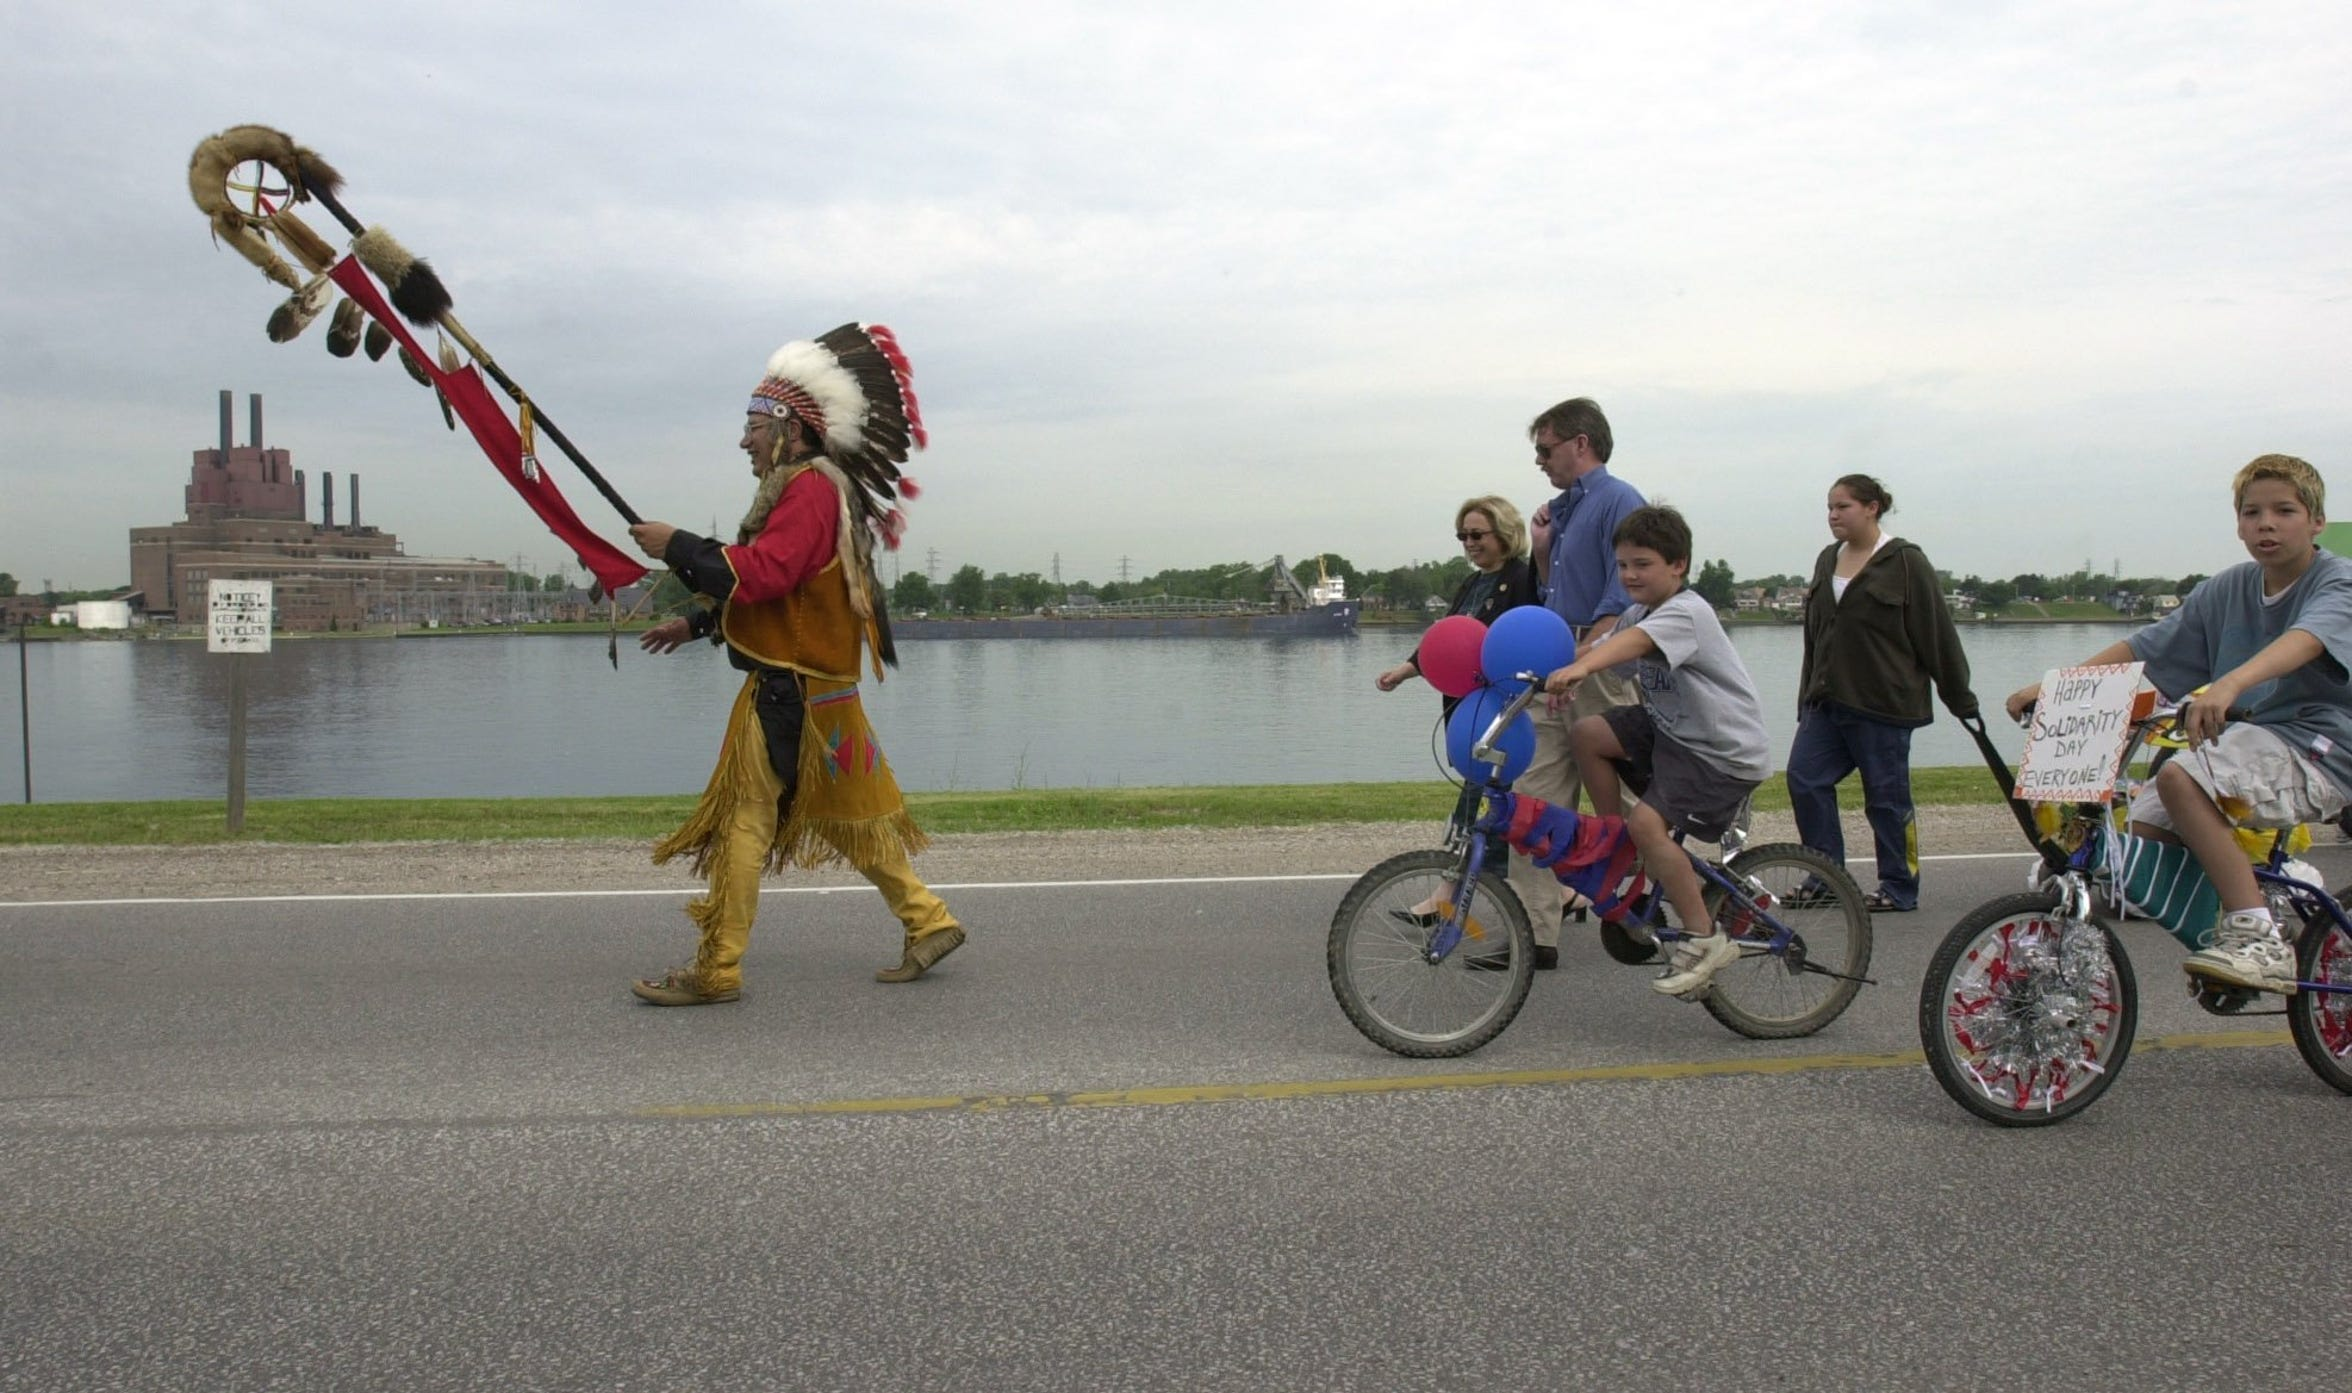 Walking along the St. Clair River in Sarnia, then-tribal Chief Phil Maness of the Sarnia Aamjiwnaang First Nation, also called the Sarnia Chippewa tribe, leads a parade during the 40th annual powwow in June 2001.